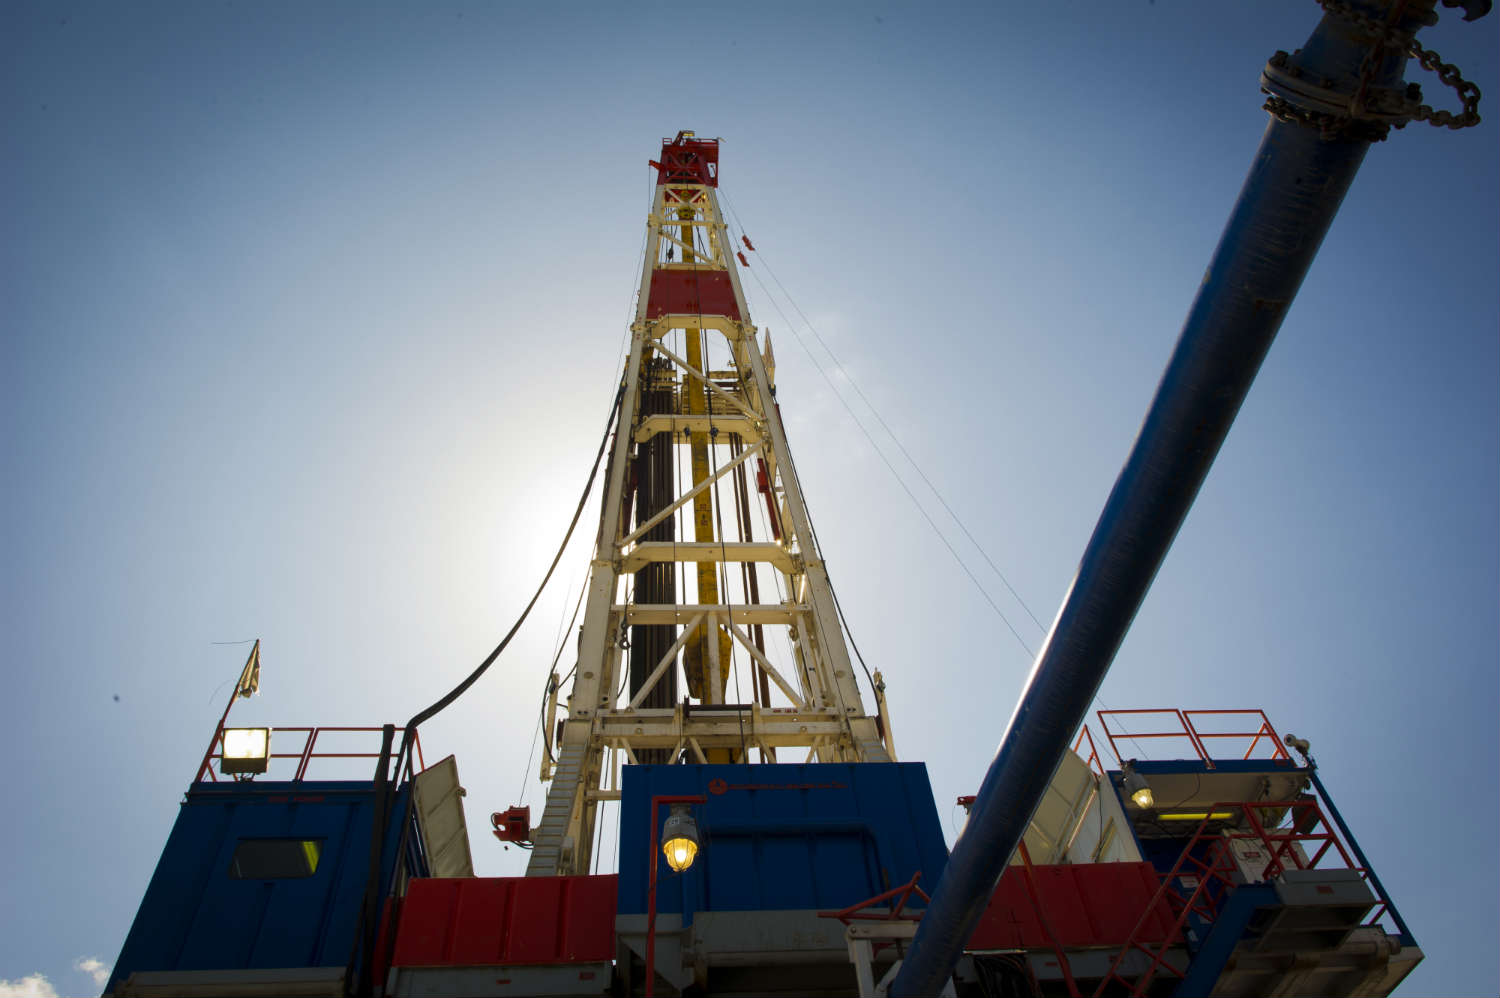 Fracking wells may be triggering seismic activity